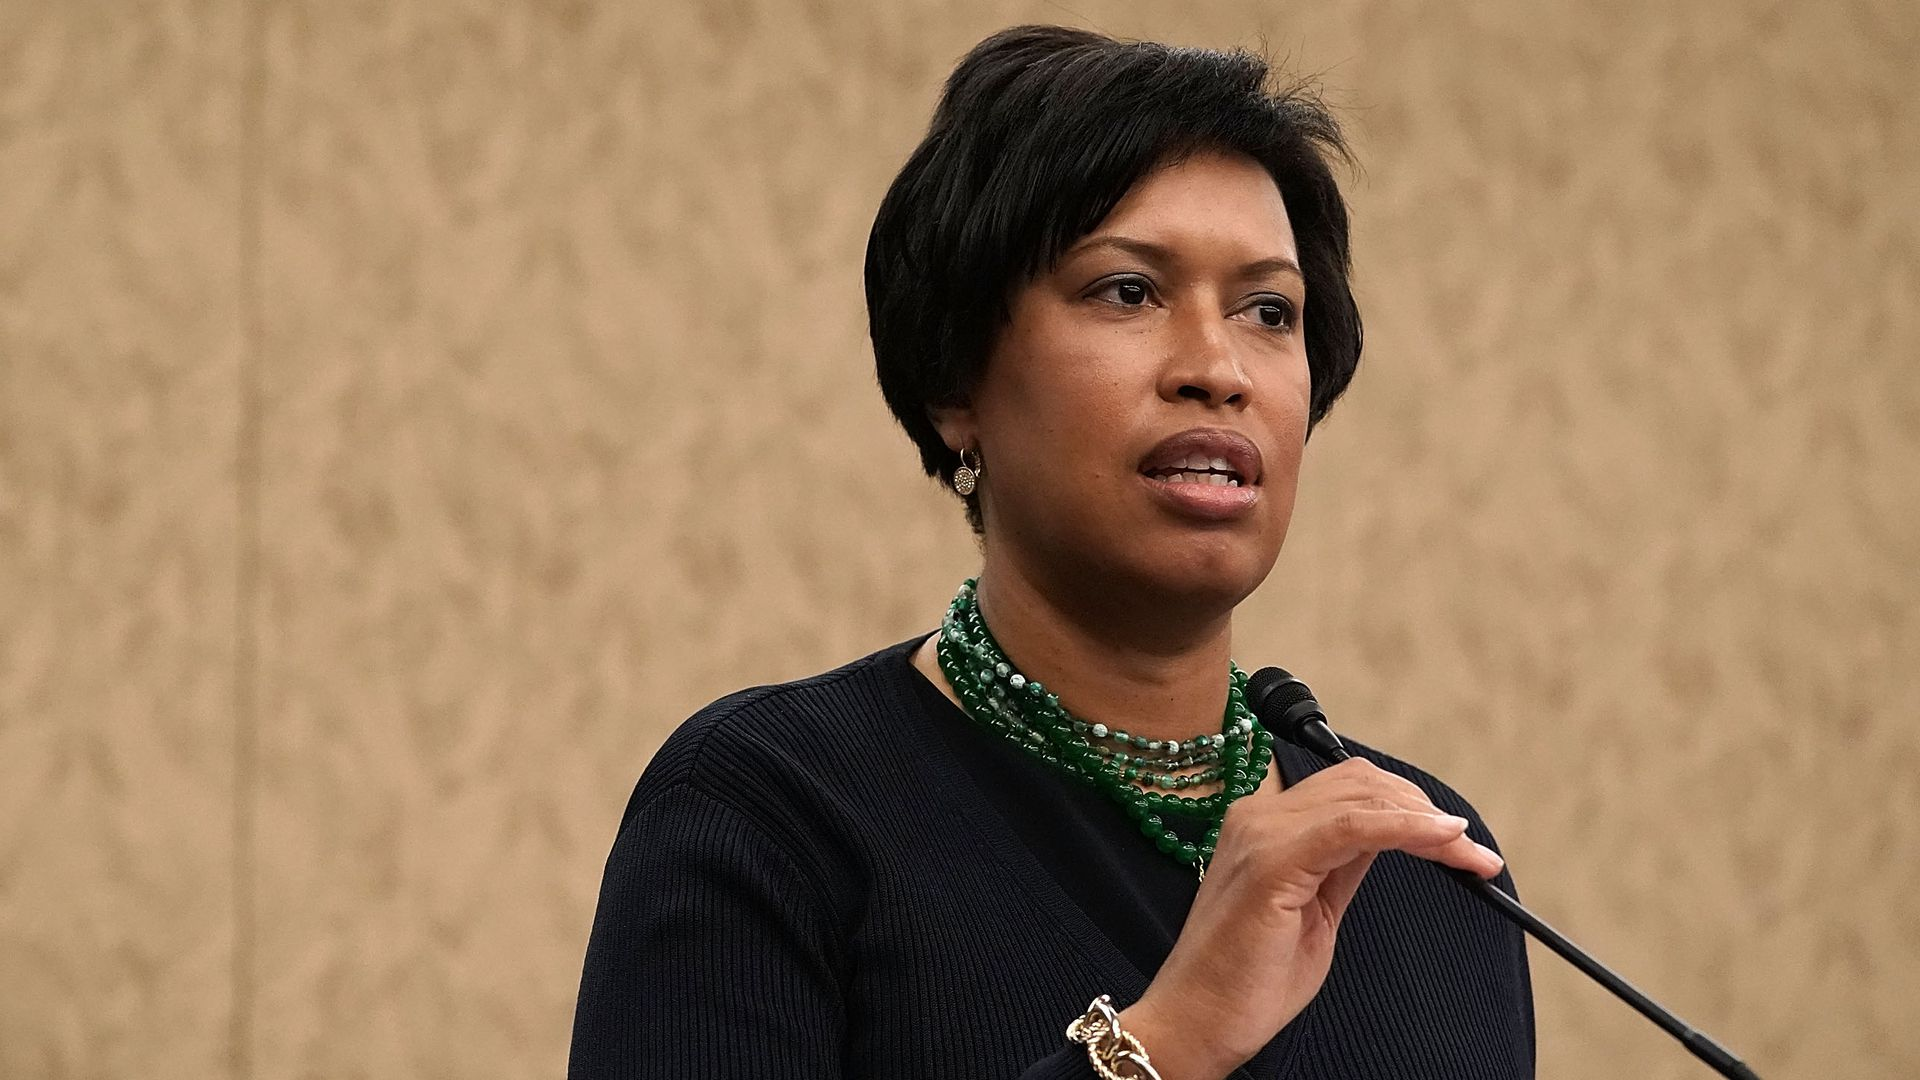 Mayor Muriel Bowser speaks into a microphone at a podium